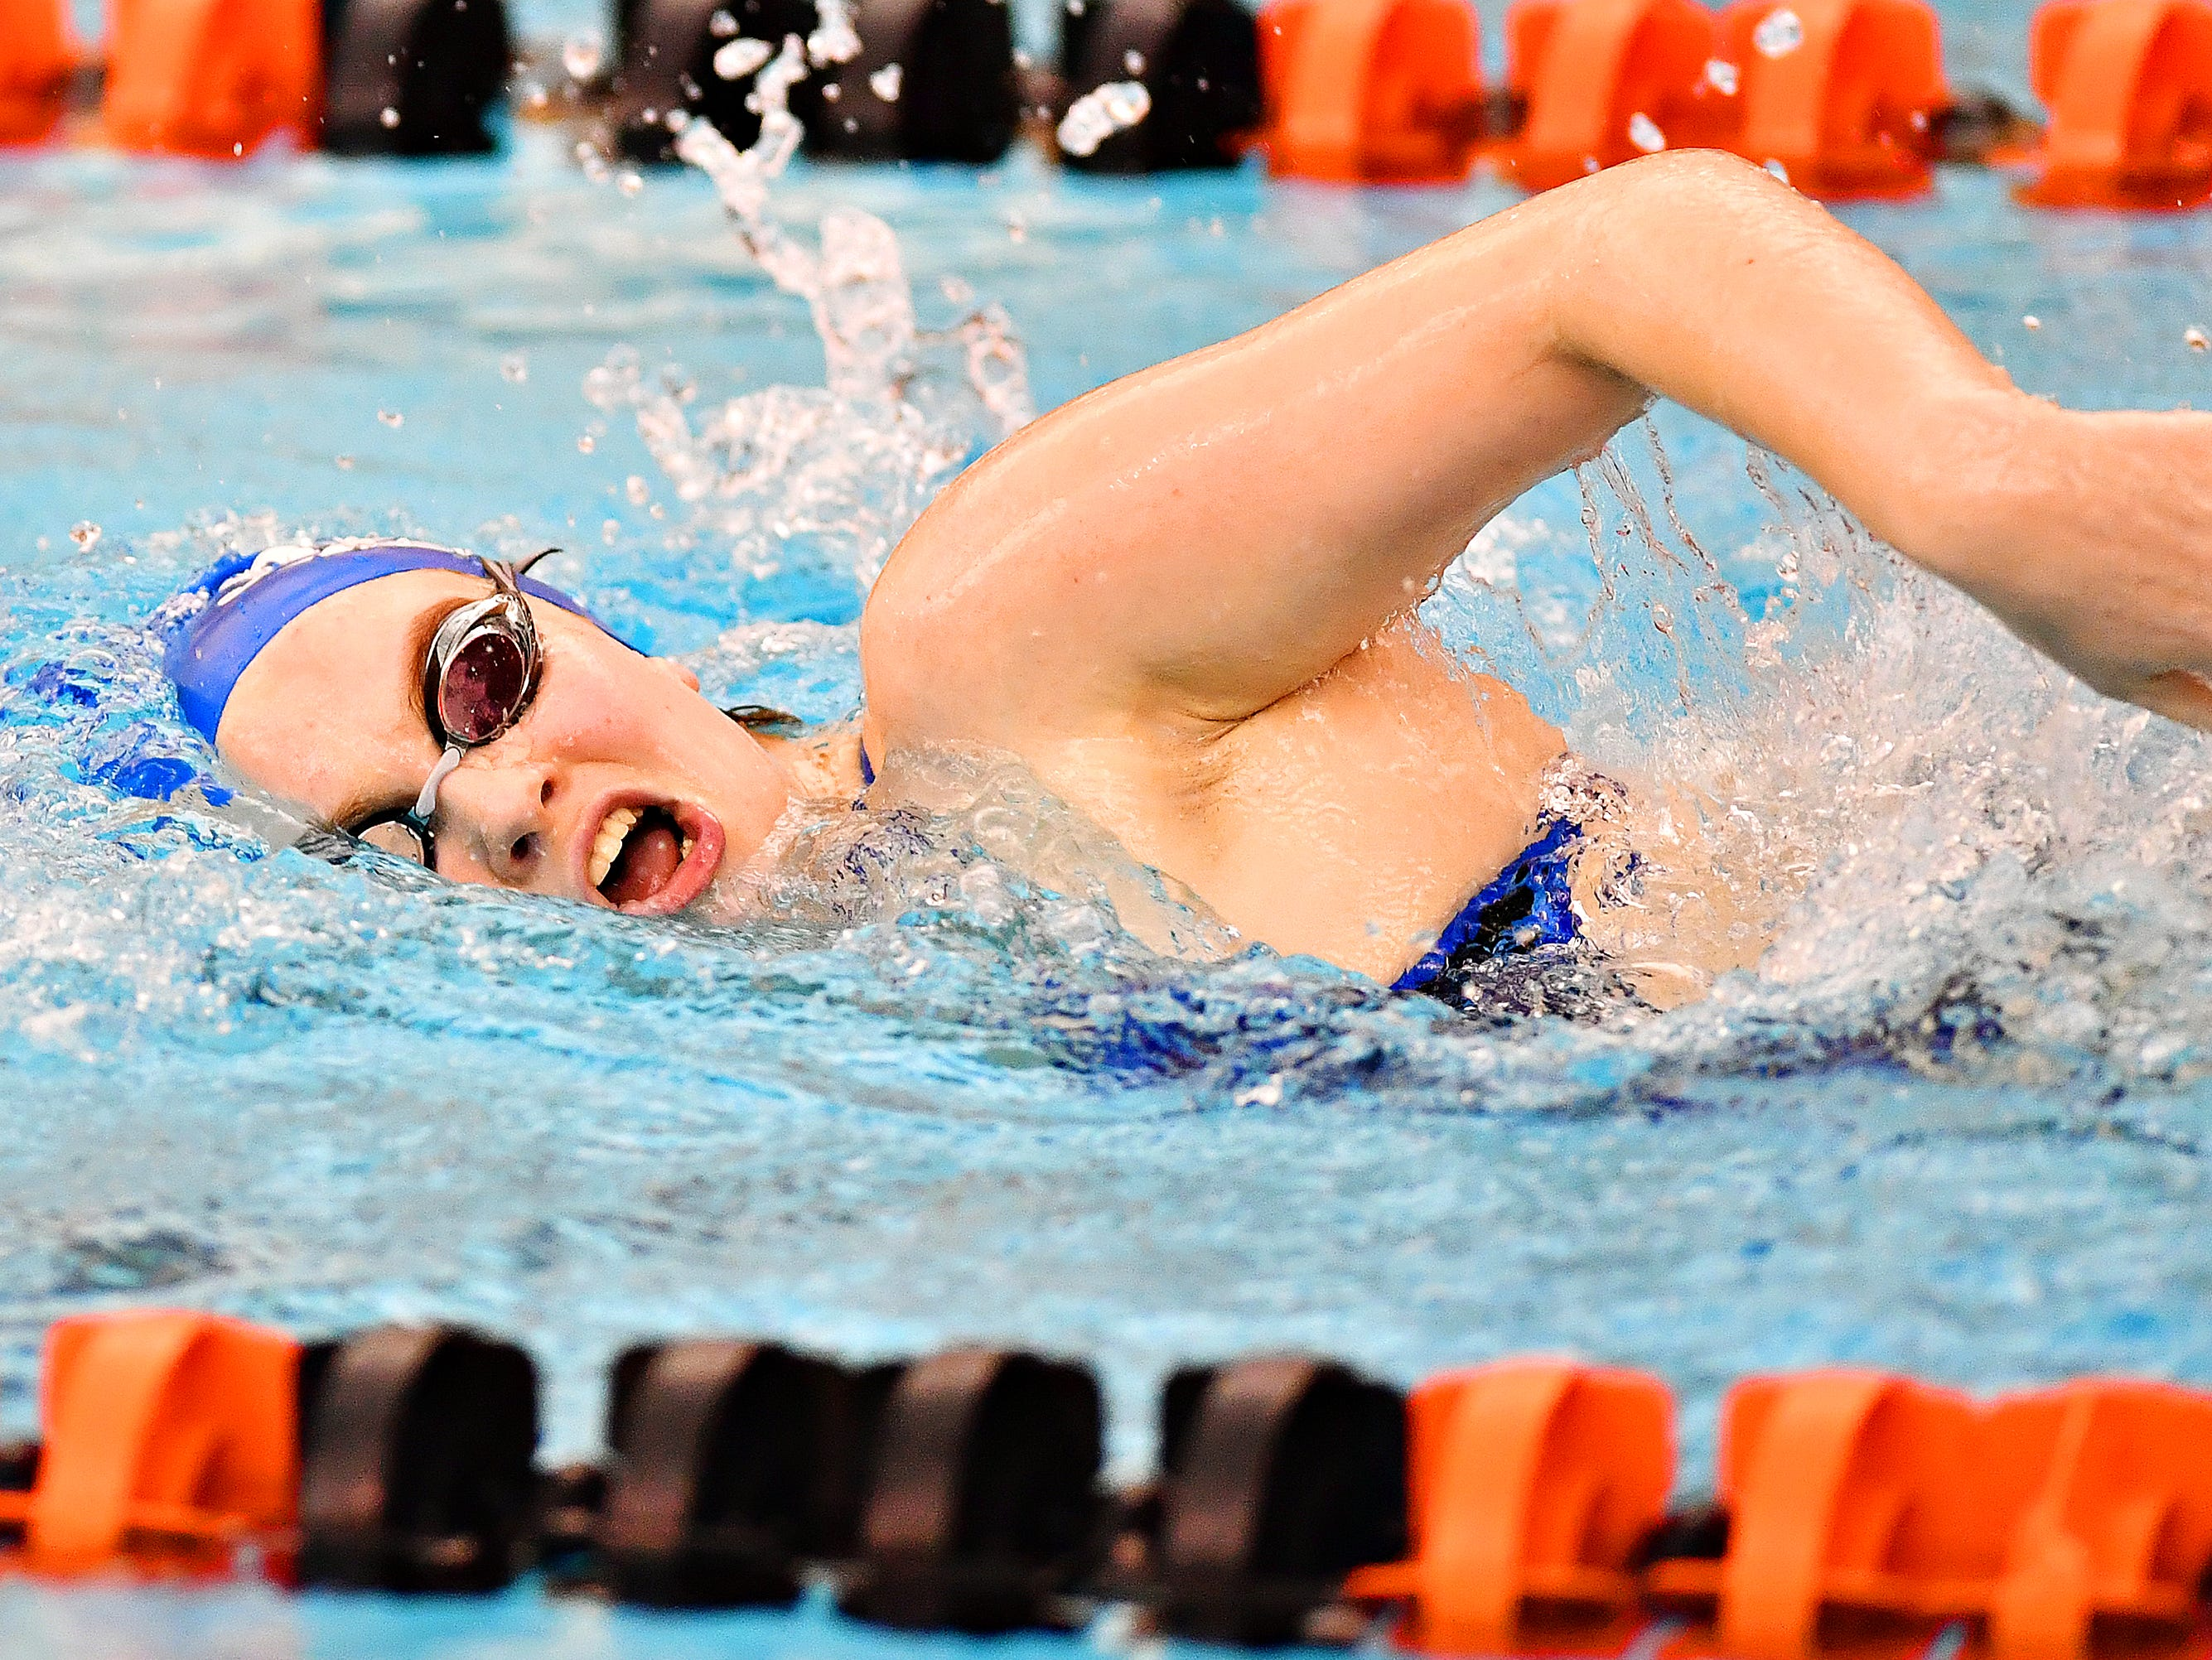 Spring Grove's Ella Calder competes in the 200 Yard Freestyle event during swimming action against Spring Grove at Central York High School in Springettsbury Township, Thursday, Jan. 3, 2019. Dawn J. Sagert photo